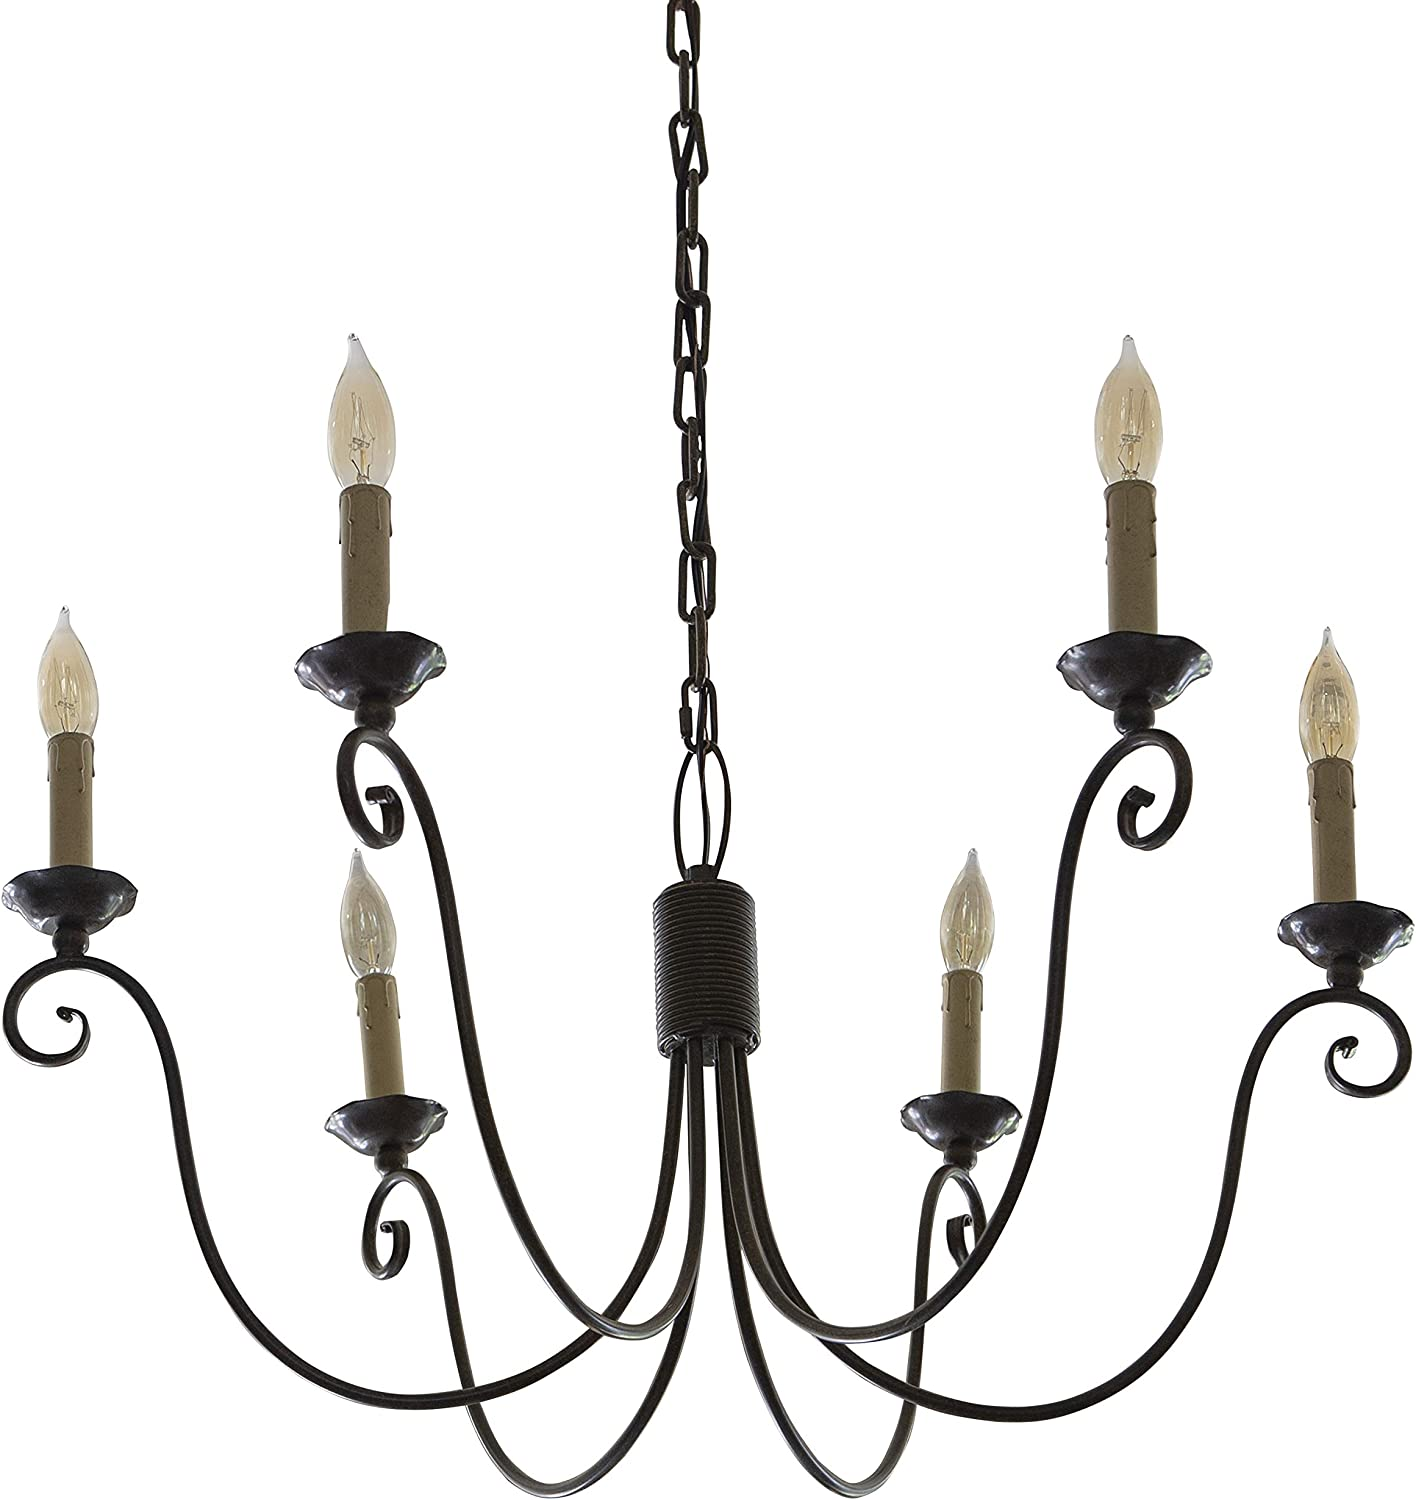 Decor Therapy CH1411 Chandelier, Measures 26.3x29.5x16.3, Scavo Rust